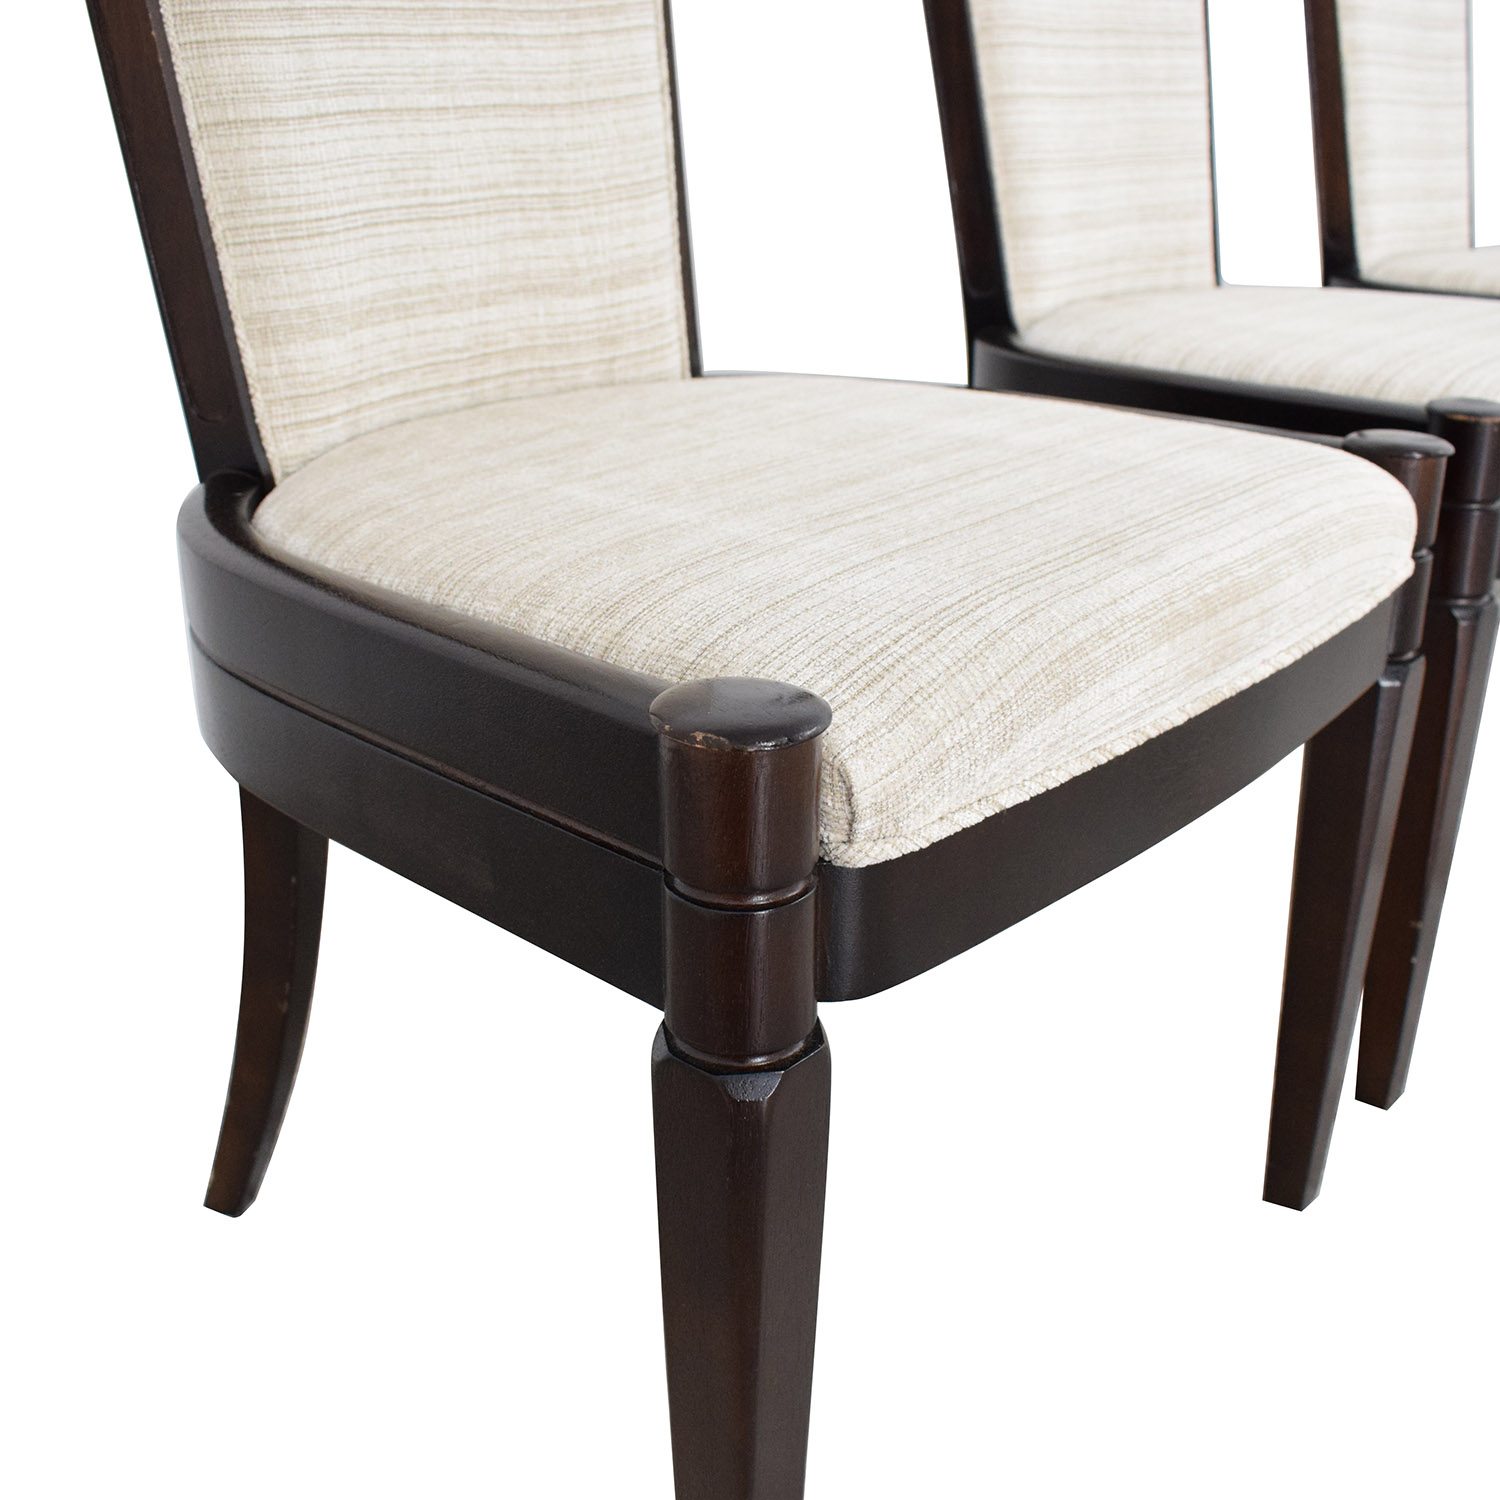 buy Century Furniture Upholstered Dining Chairs Century Furniture Chairs